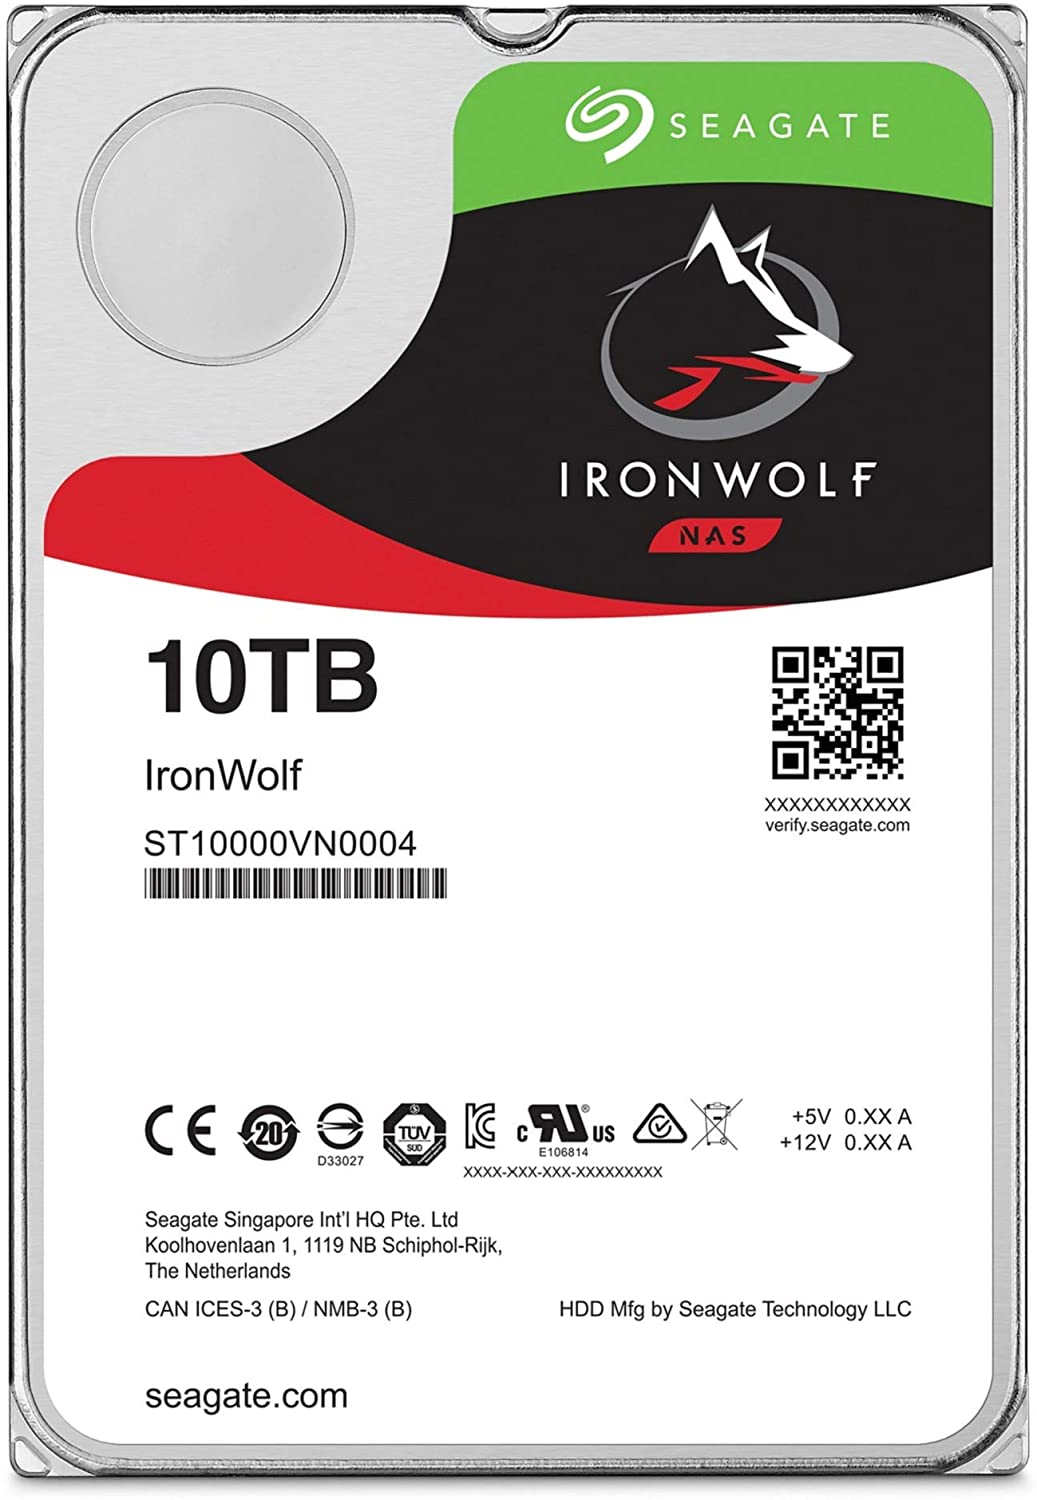 IronWolf 10TB NAS Internal Hard Drive HDD – 3.5 Inch SATA 6Gb/s 7200 RPM 256MB Cache RAID Network Attached Storage Home Servers – Frustration Free Packaging (ST10000VN0004)